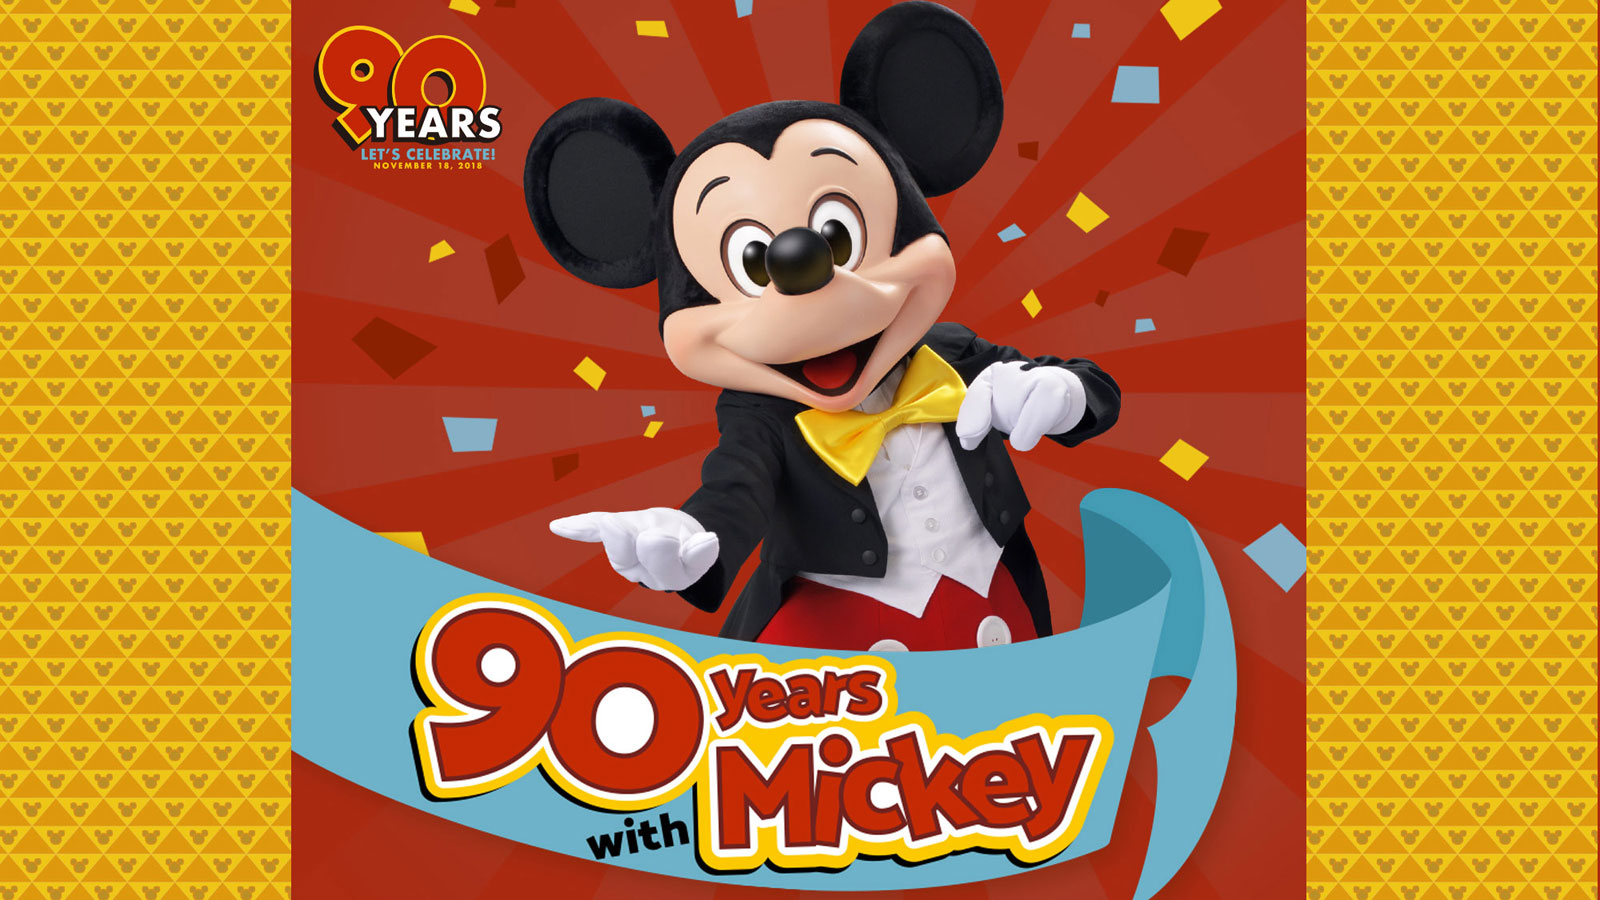 90 years with Mickey イメージ